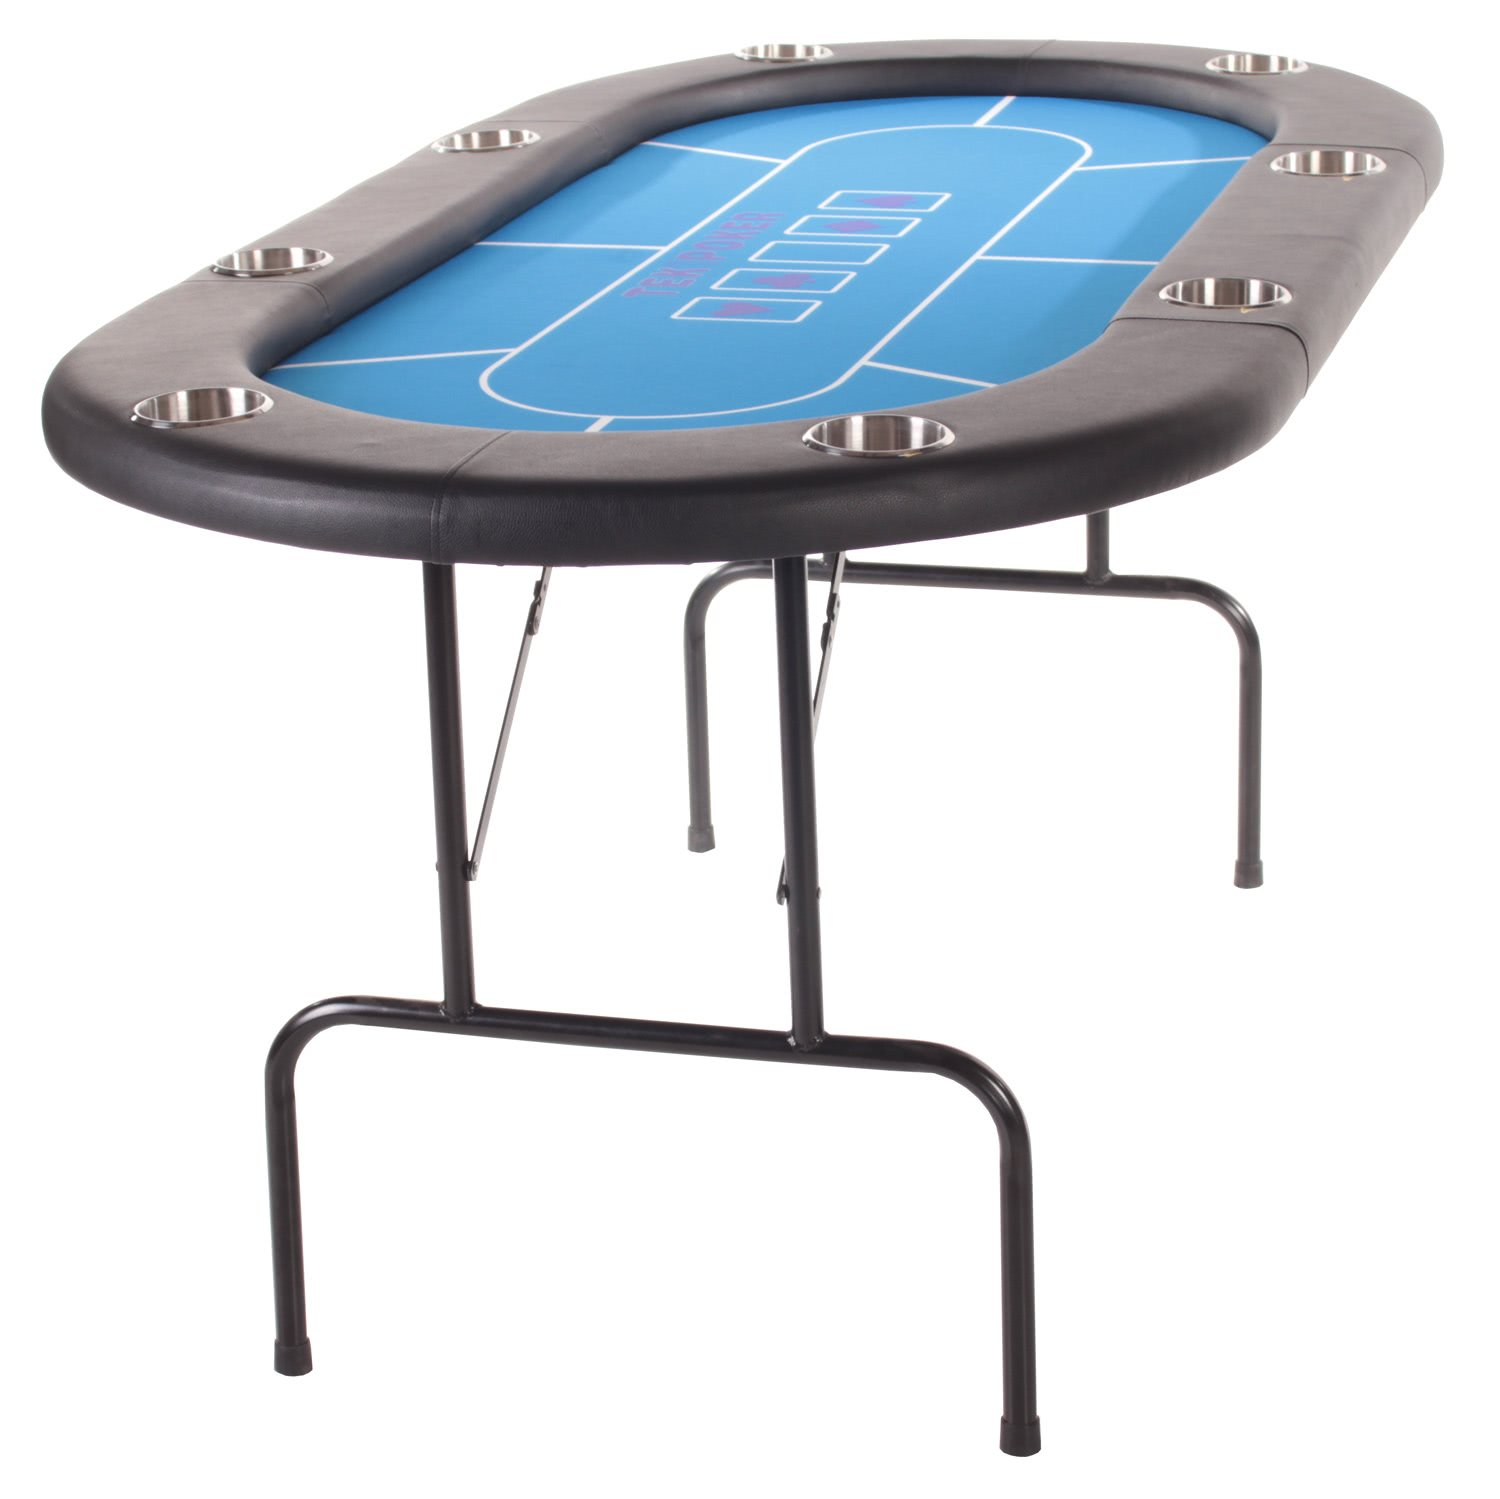 Poker pro tables cost